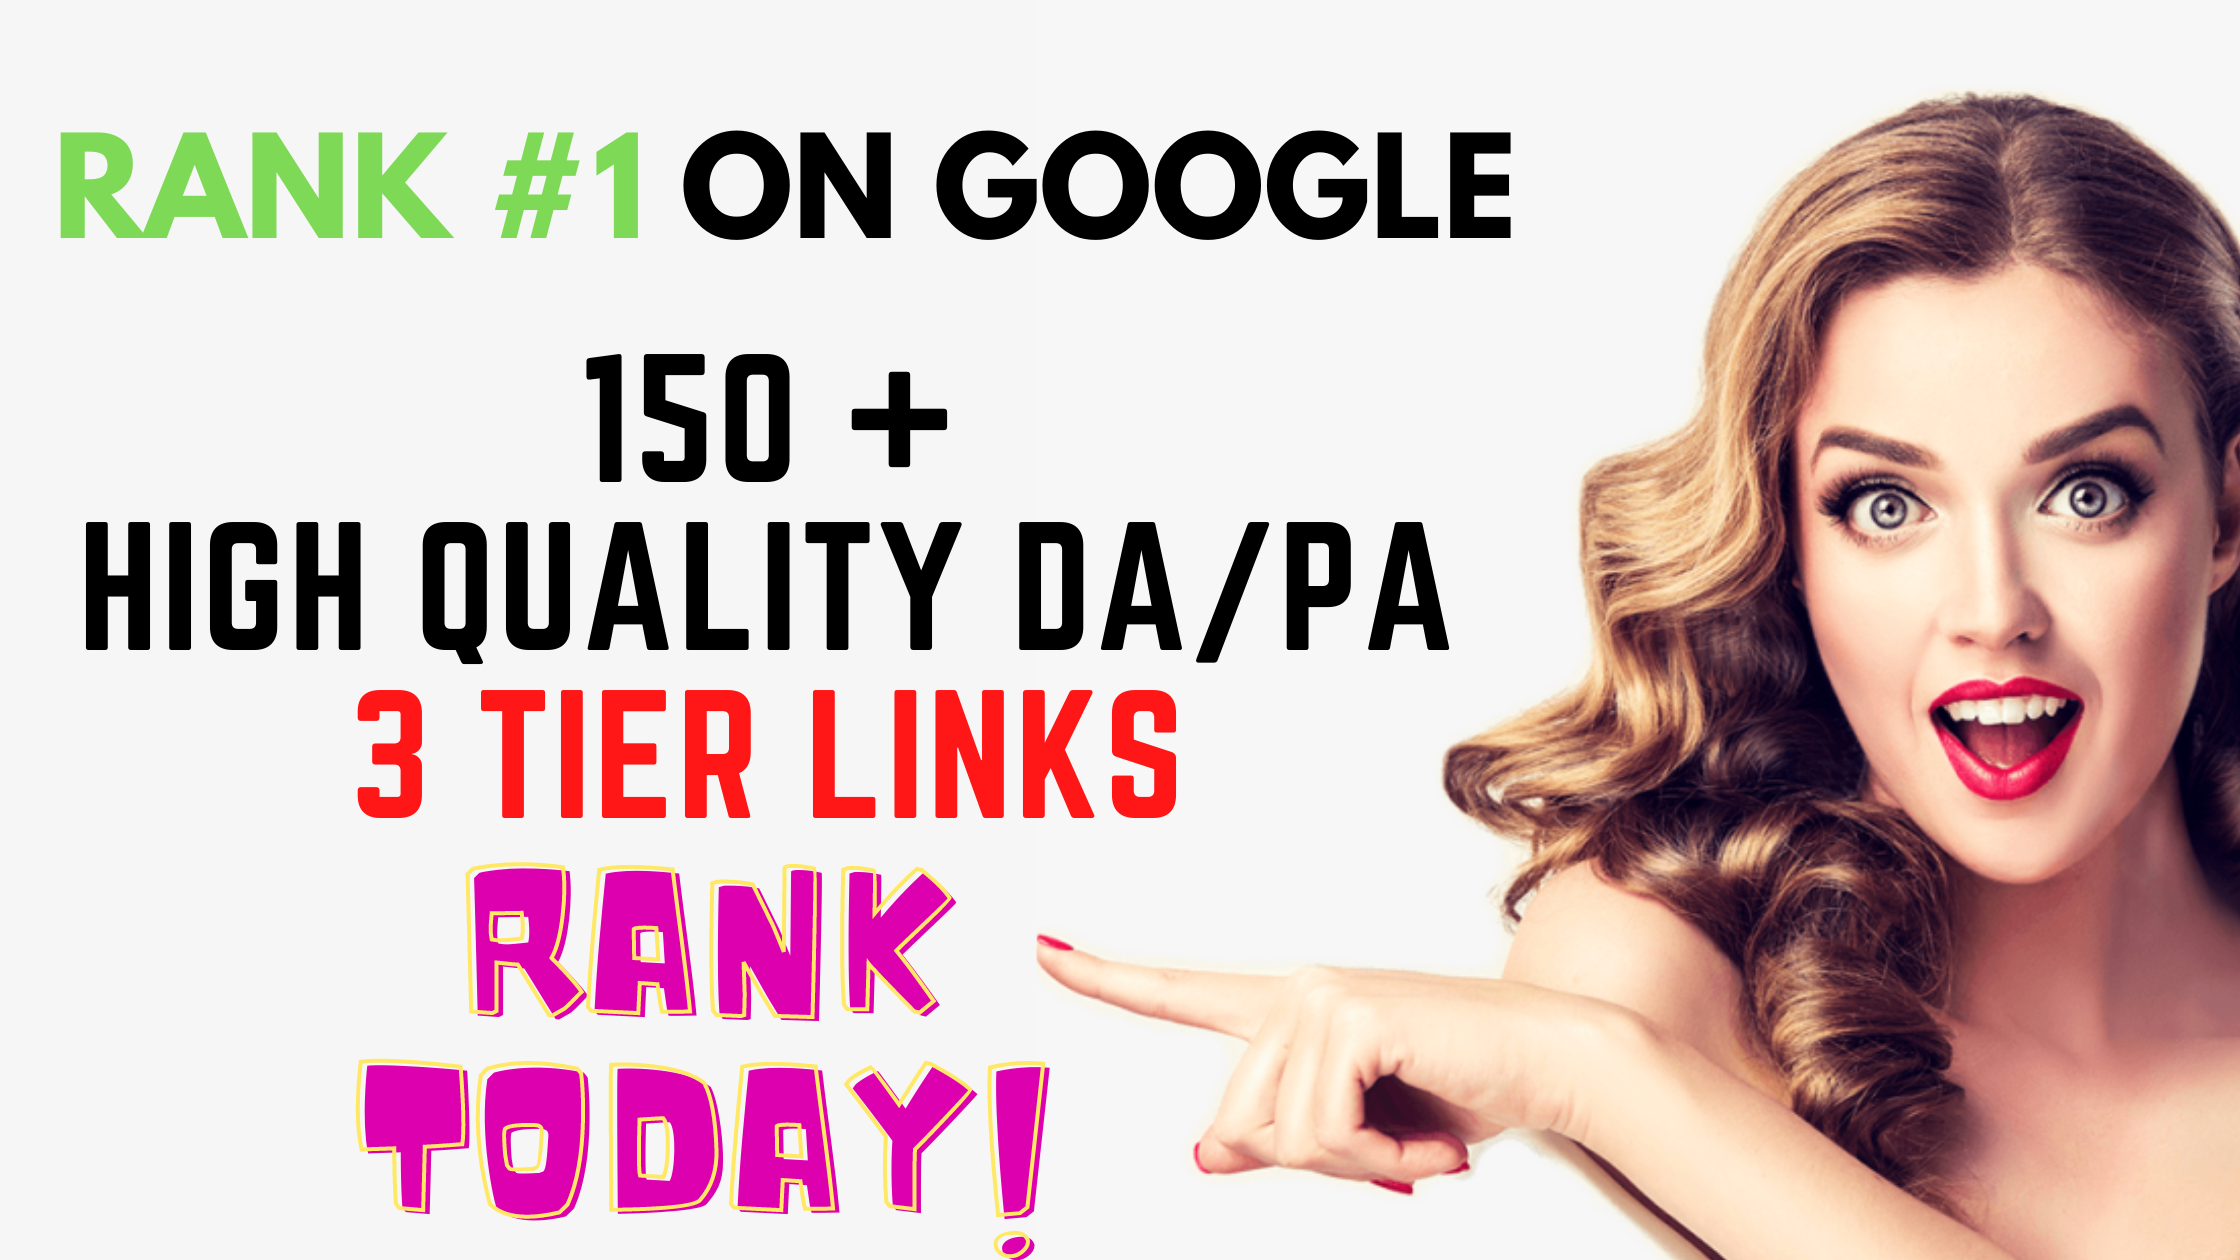 Boost Website Rank With Our High Quality DA/PA 3 Tier Link Building Service | High Quality Backlinks